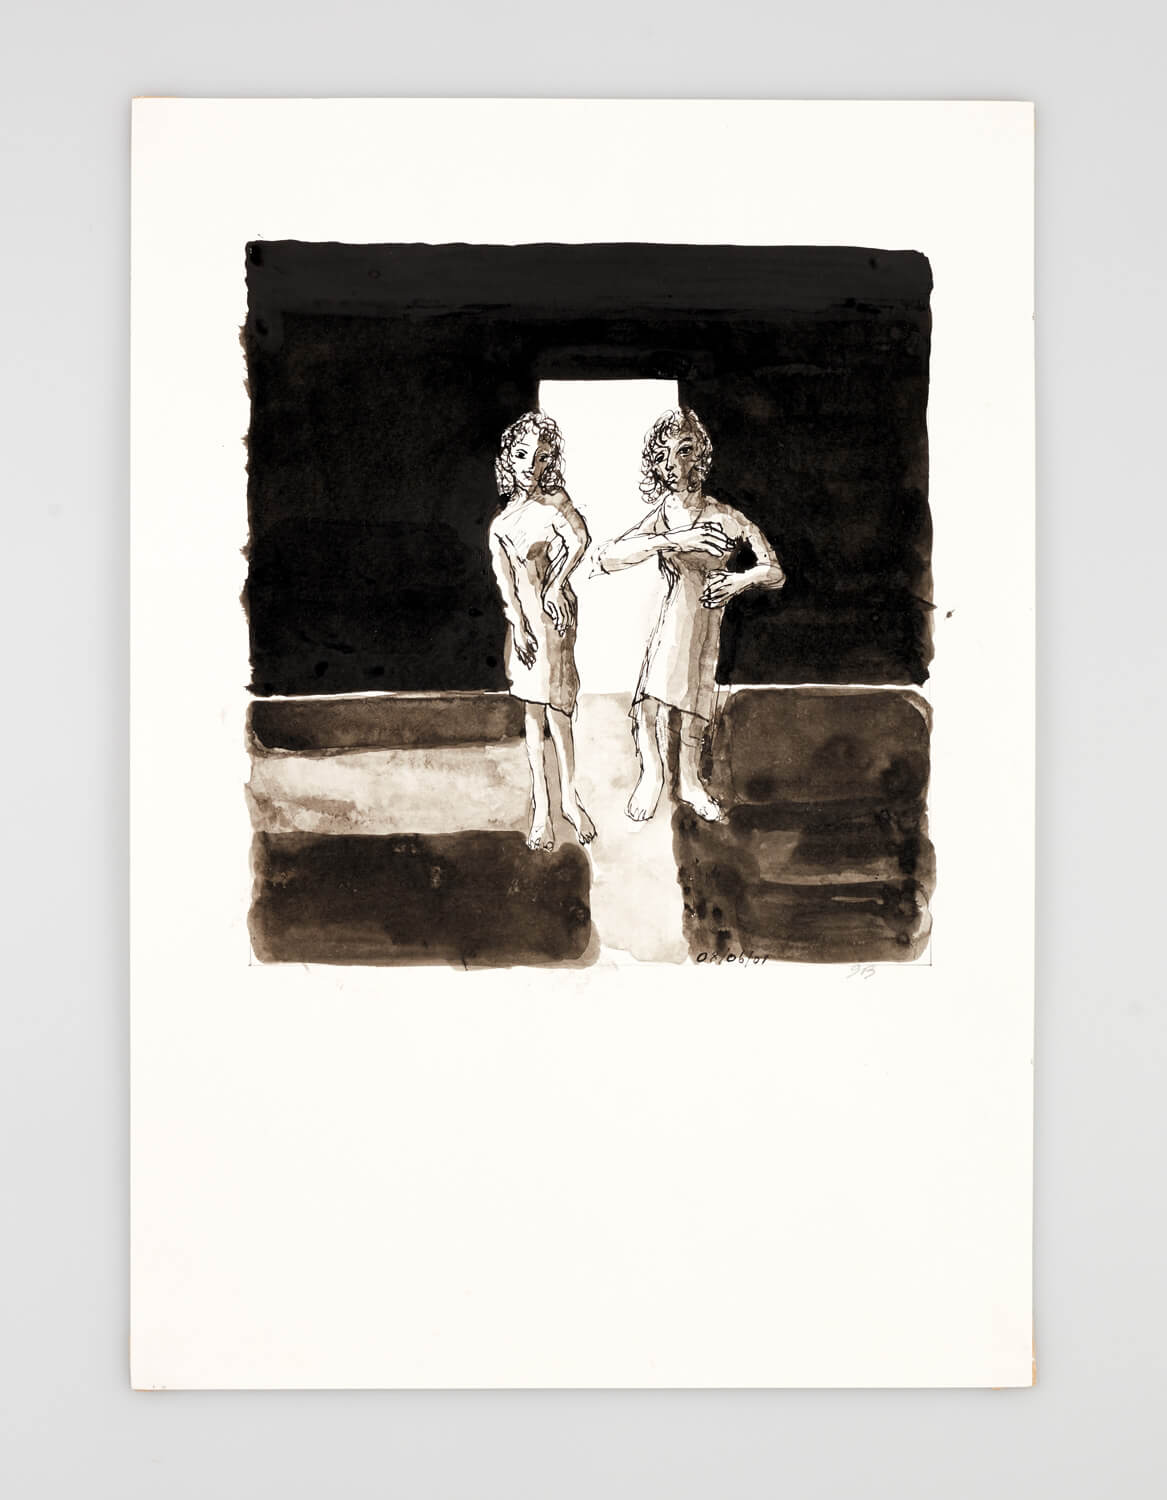 JB003 - Two Women Dressing - 2001 - 50 x 35 cm - Indian ink and wash on paper